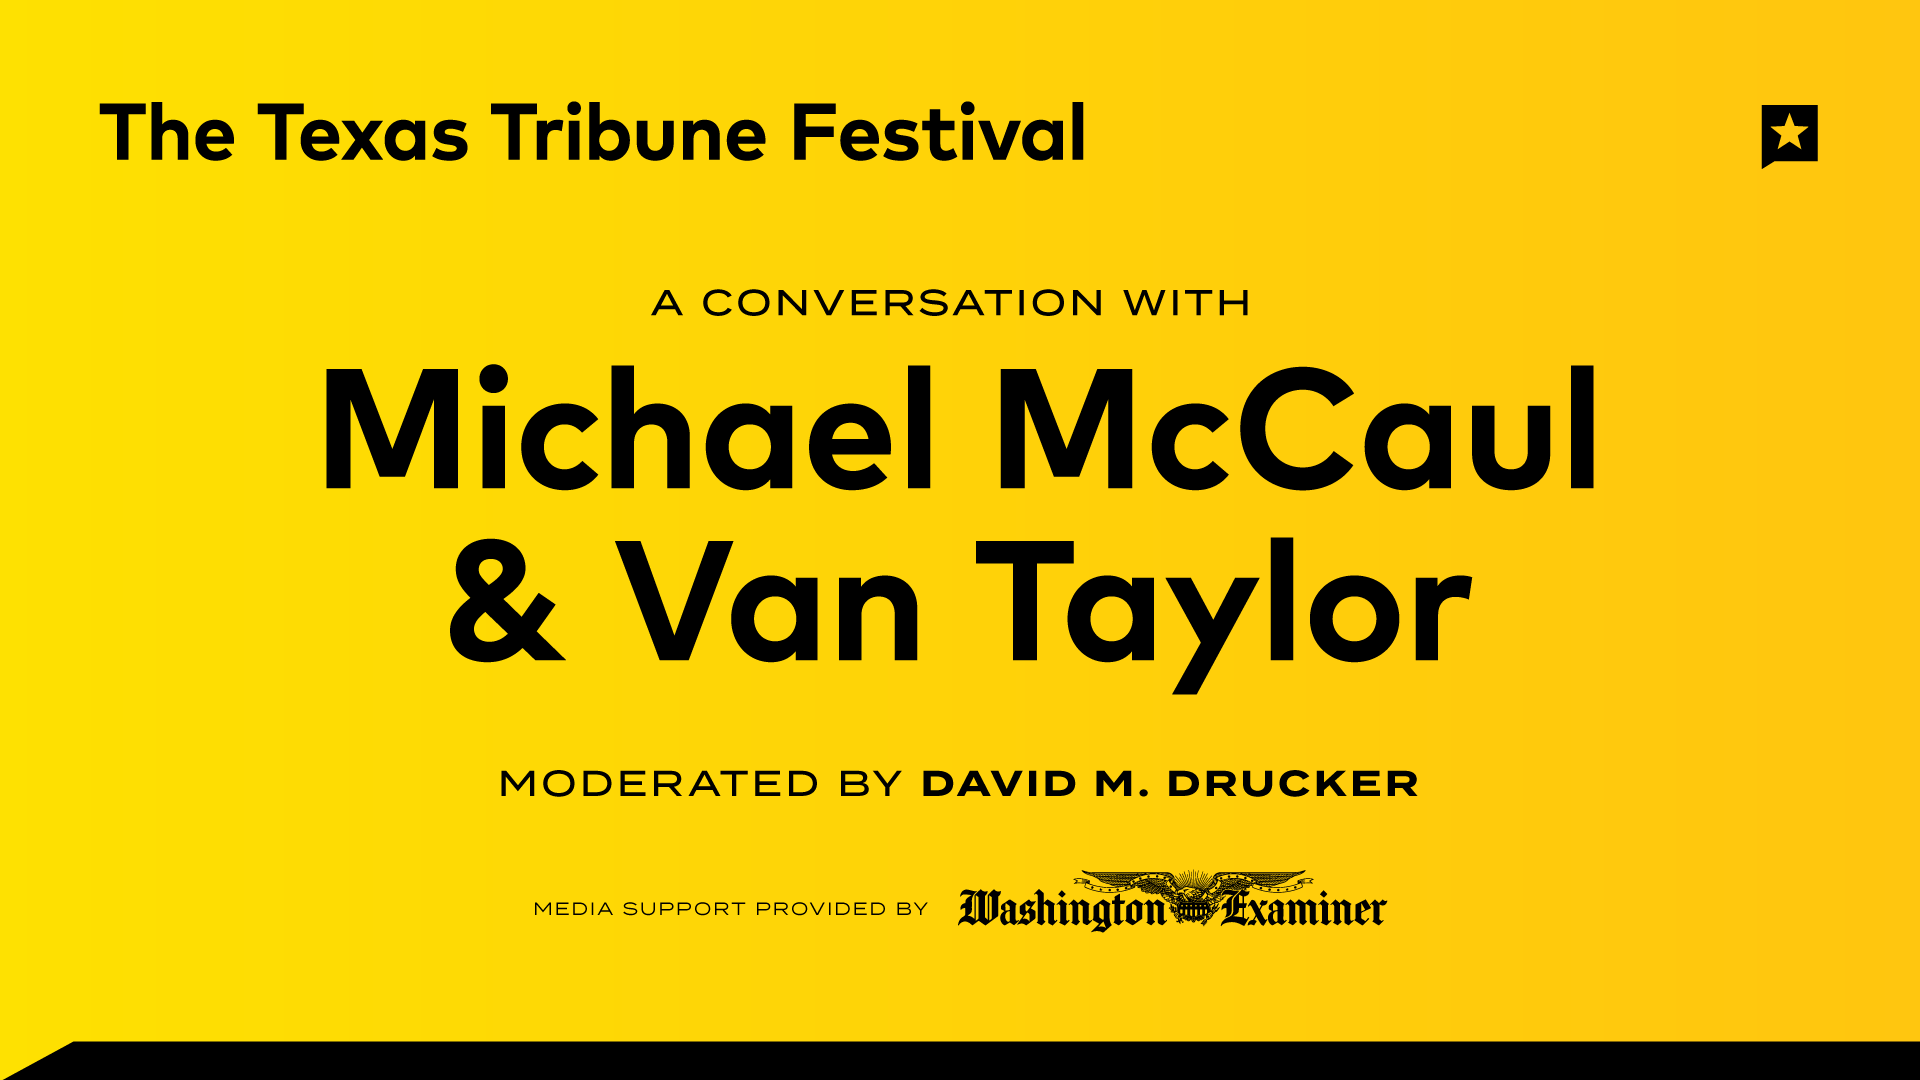 A Conversation with Michael McCaul and Van Taylor